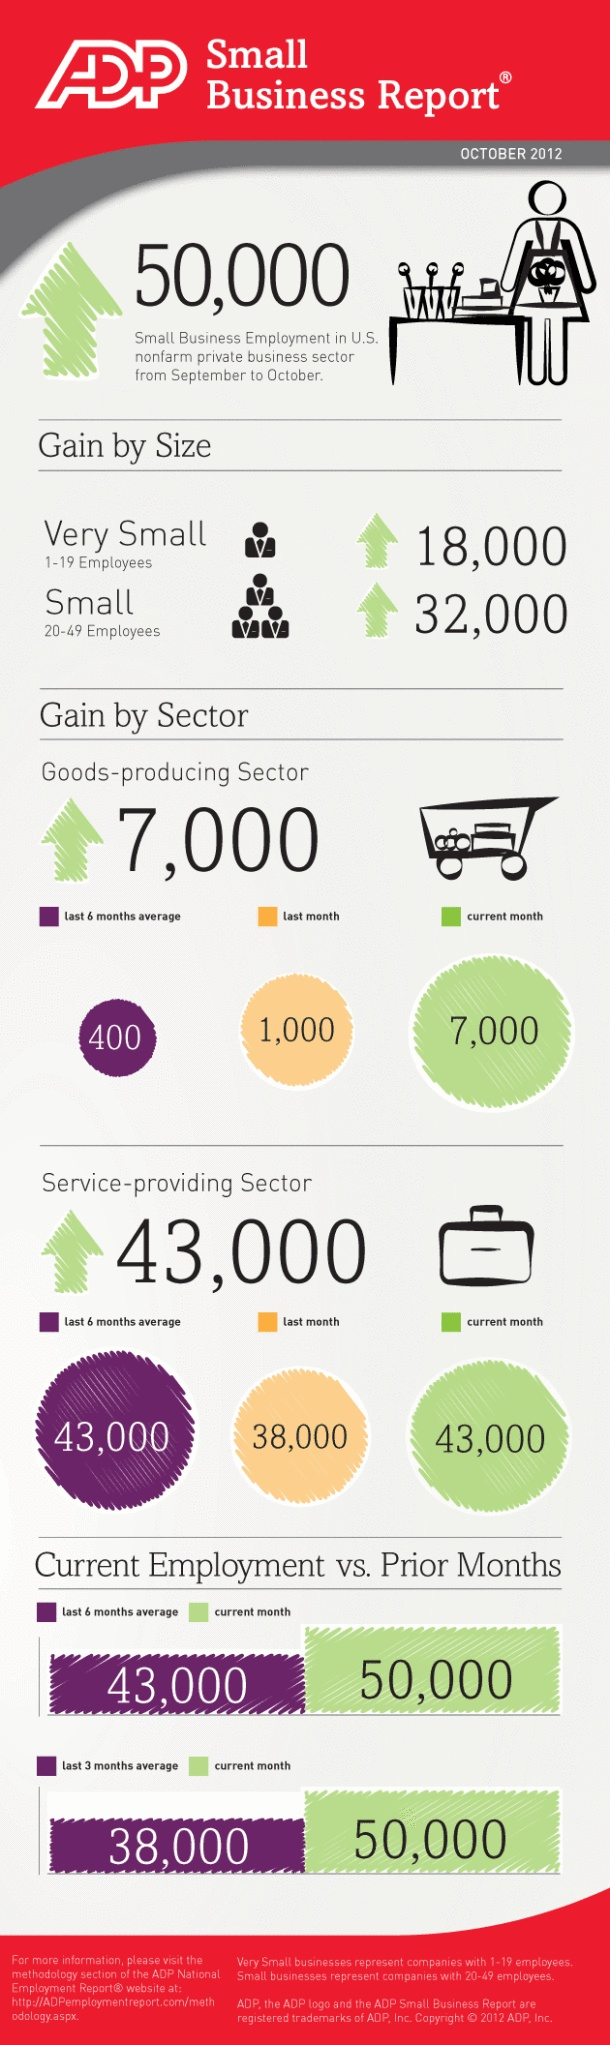 ADP Small Business Report [INFOGRAPHIC]